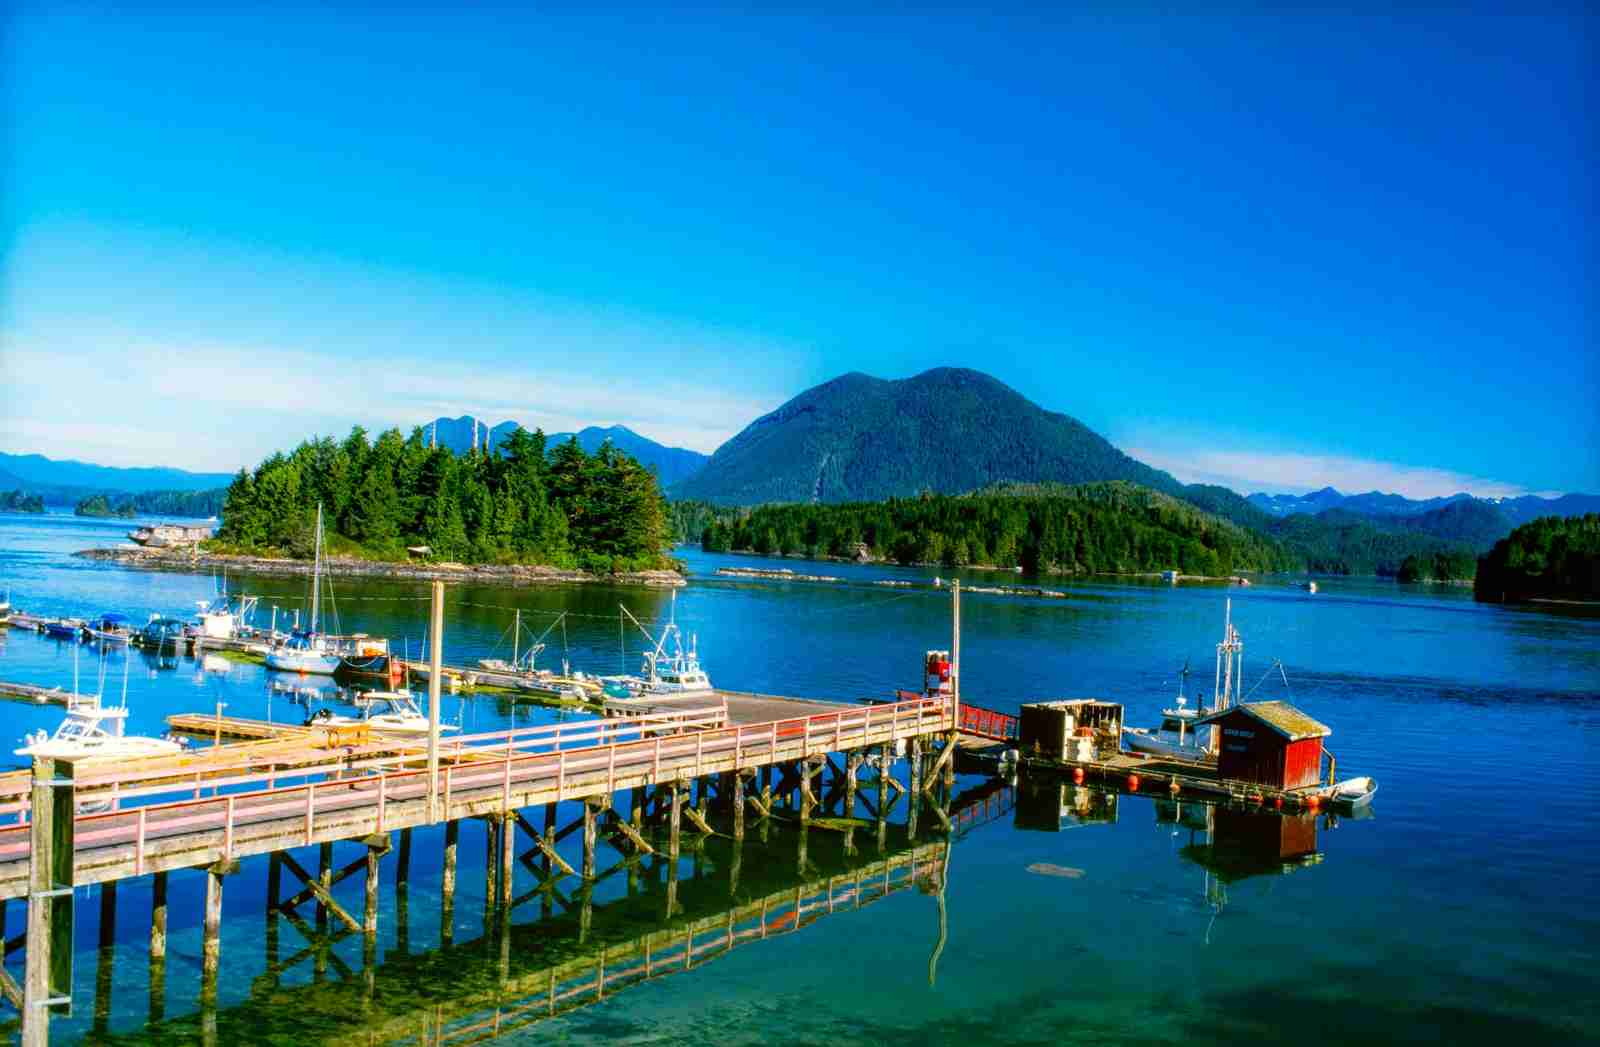 Tofino Harbour on Vancouver Island. (Photo by Pierre Longnus/Getty Images)